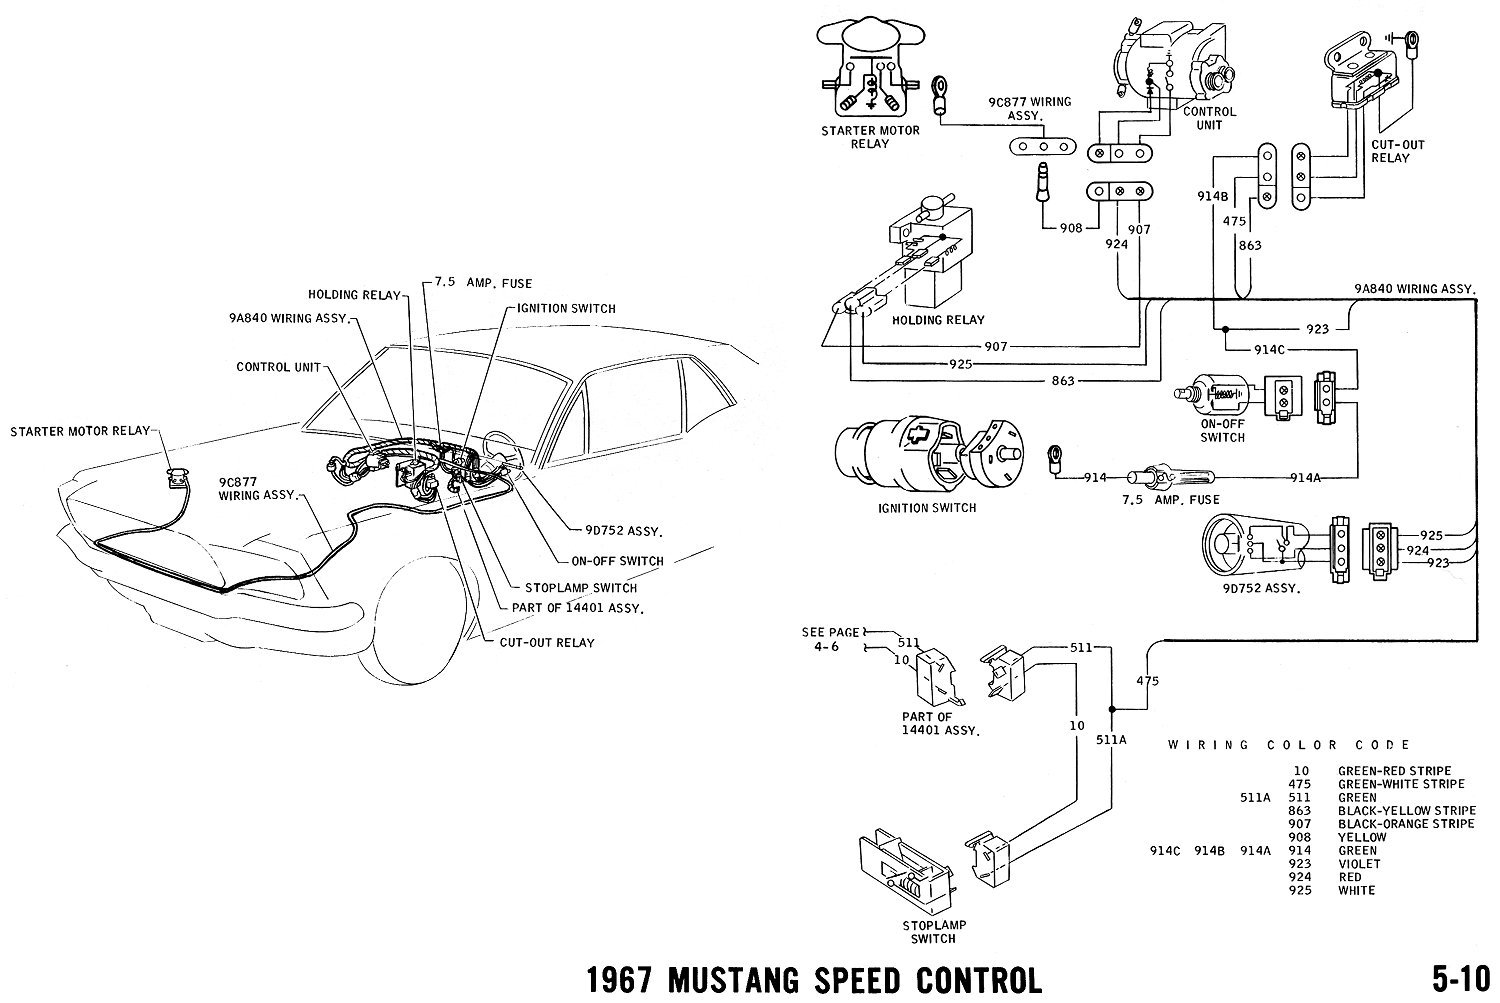 67speed 1967 mustang wiring and vacuum diagrams average joe restoration 67 mustang wiring diagram at alyssarenee.co